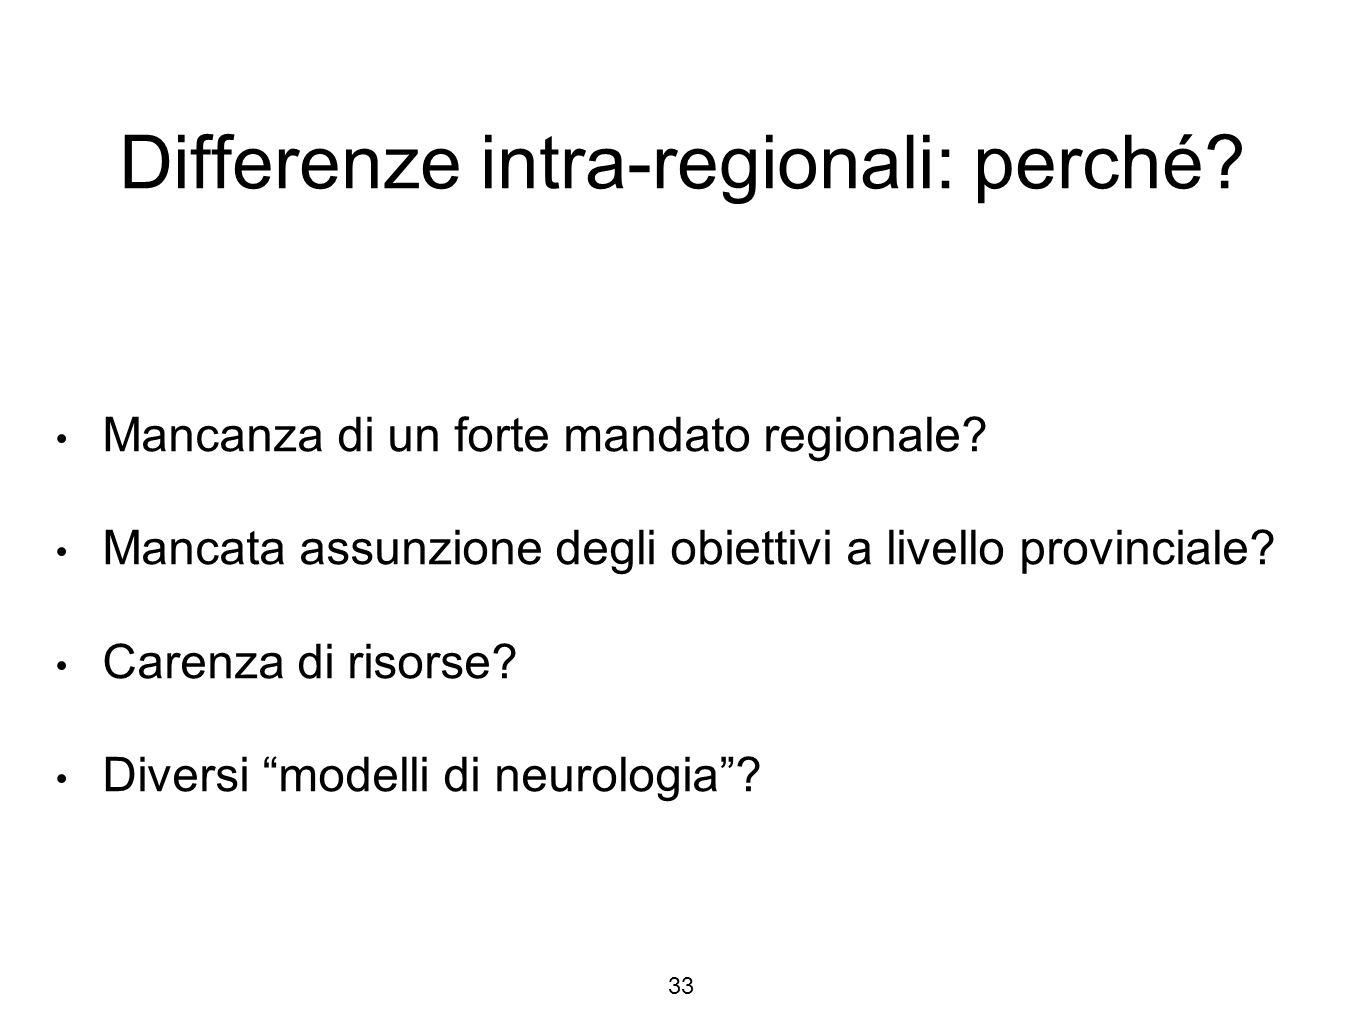 Differenze intra-regionali: perché